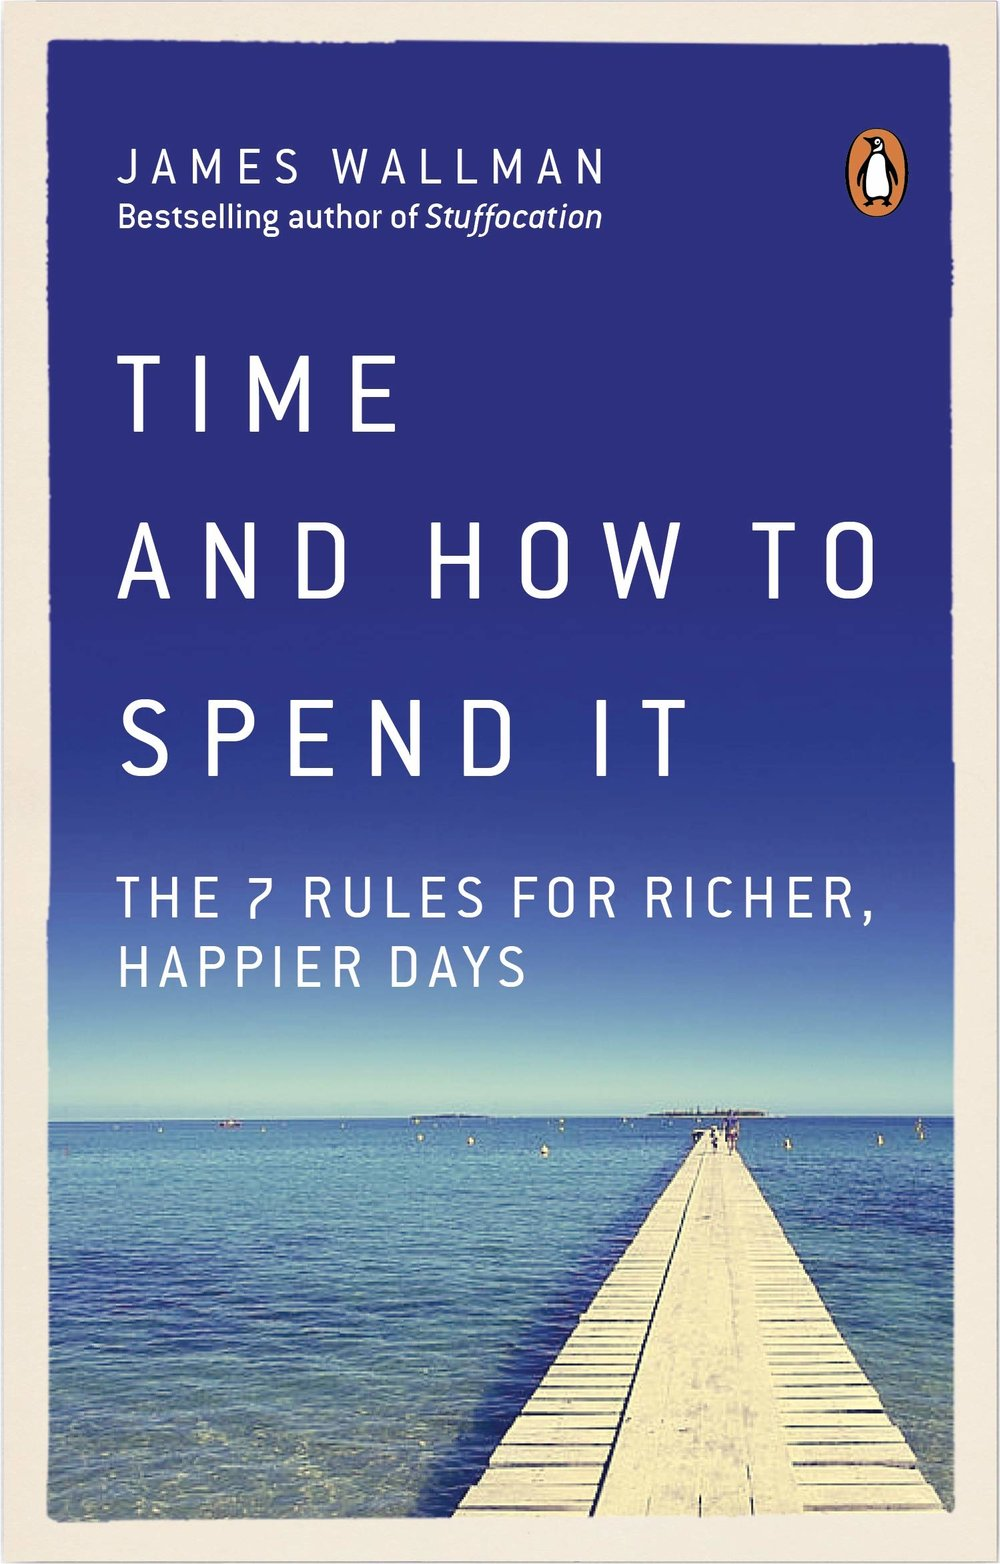 No. 1 bestseller! - Our founder James Wallman has written another bestselling book.Released in the UK in April 2019, TIME AND HOW TO SPEND IT shot to… … no. 1 in Business Motivation Skills… no. 1 in Business Time Management Skills, and … no. 1 in New Age Thought & Practice. Its highest rank, out of all books sold on Amazon, has been no. 8 so far.The book was so popular in its first week, Amazon ran out of copies.TIME AND HOW TO SPEND IT is available in all good book stores, from Waterstones to WHSmith.It's been spotted on sale in places as far flung as Rome airport.Click the book to visit the website and find out more.